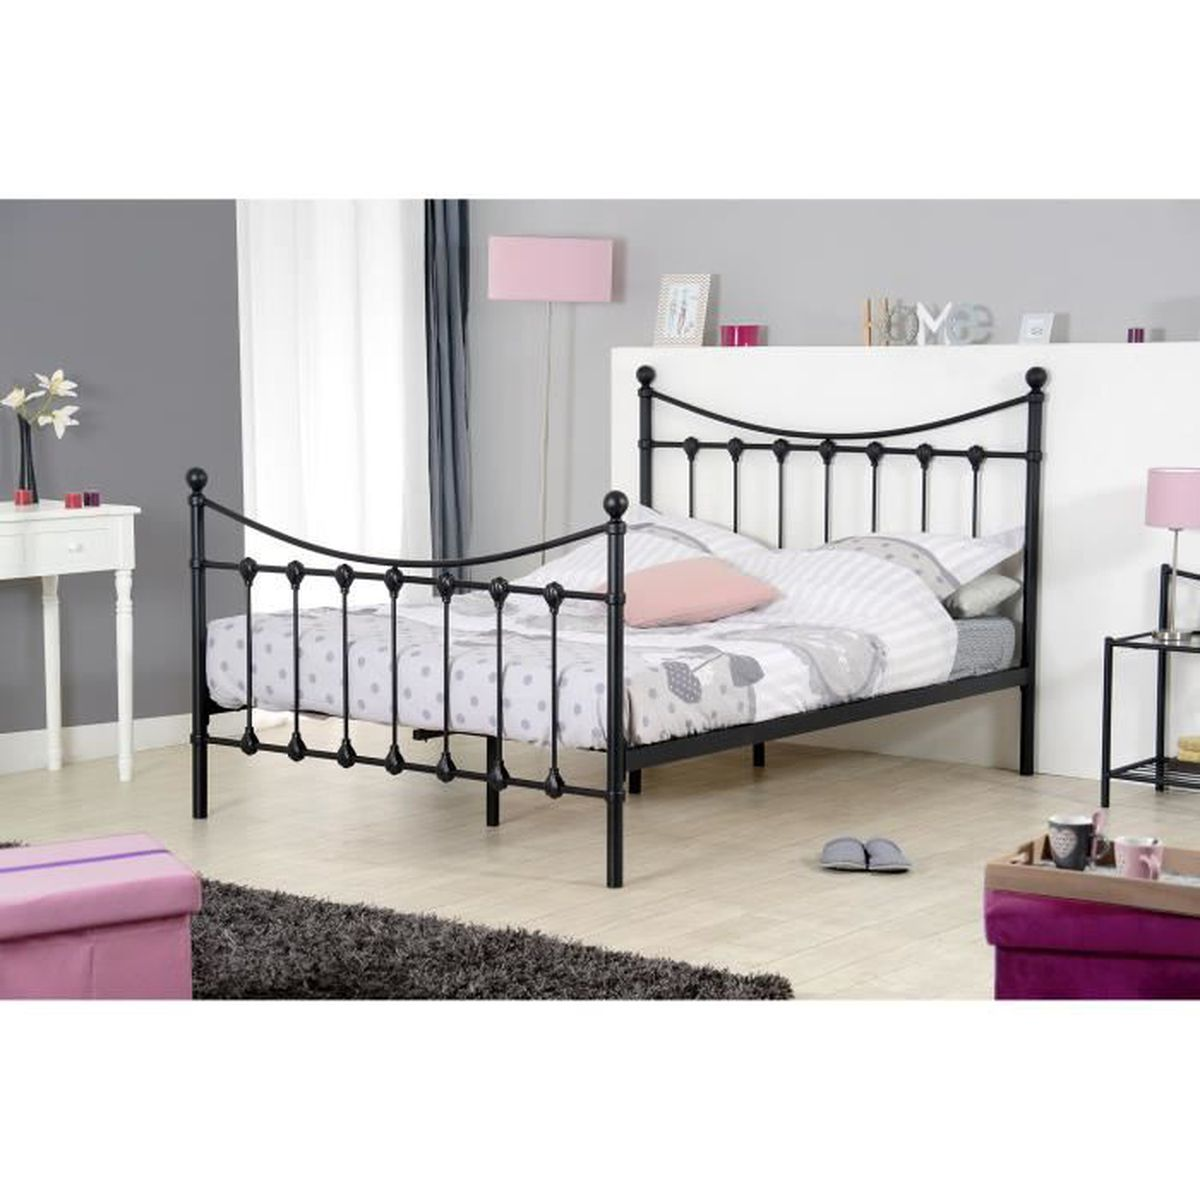 lit avec sommier 140 190 chevet achat vente lit avec. Black Bedroom Furniture Sets. Home Design Ideas